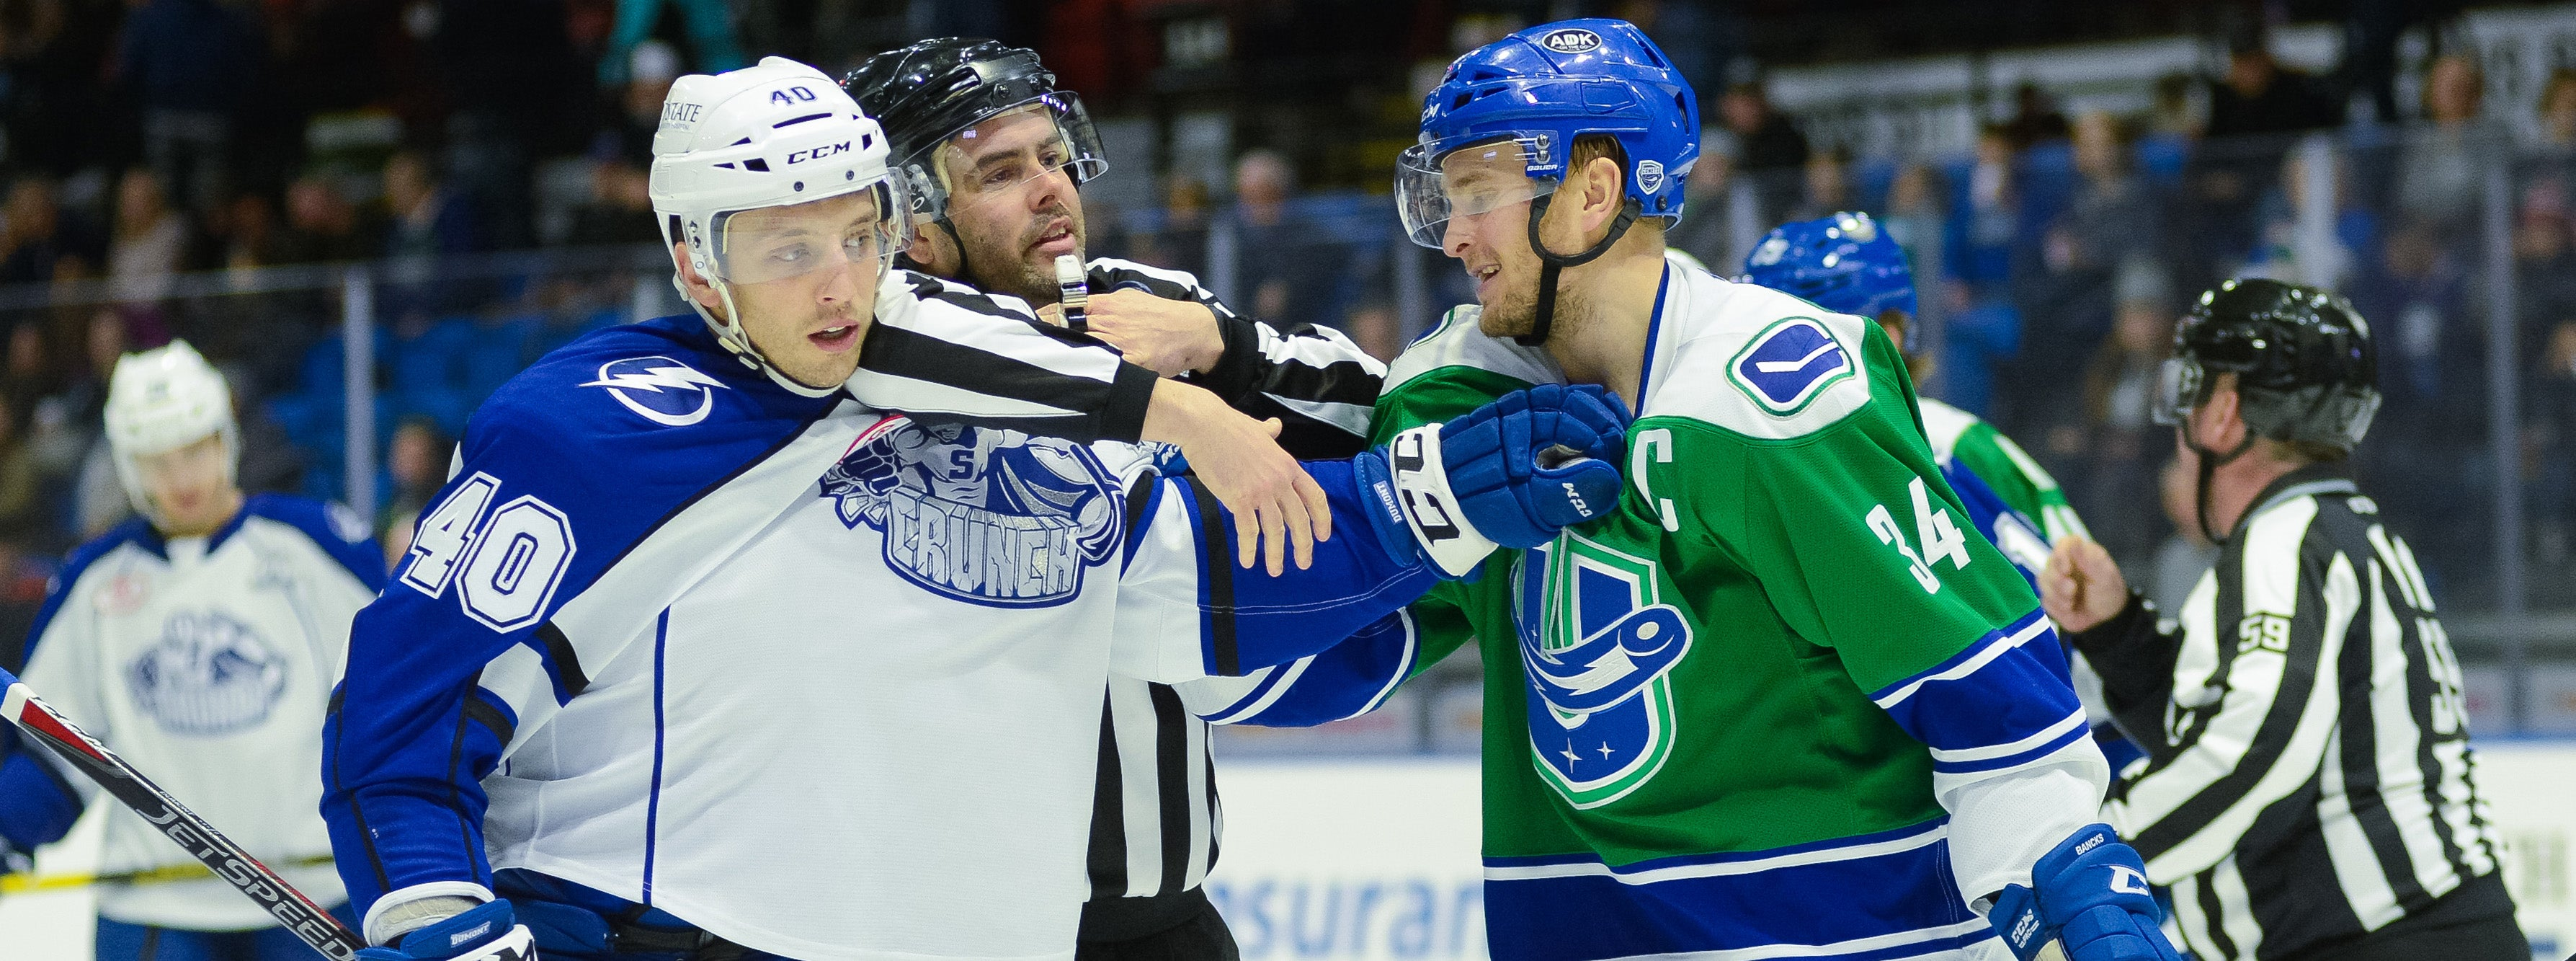 COMETS, CRUNCH THROWDOWN IN GAME EIGHT OF GALAXY CUP